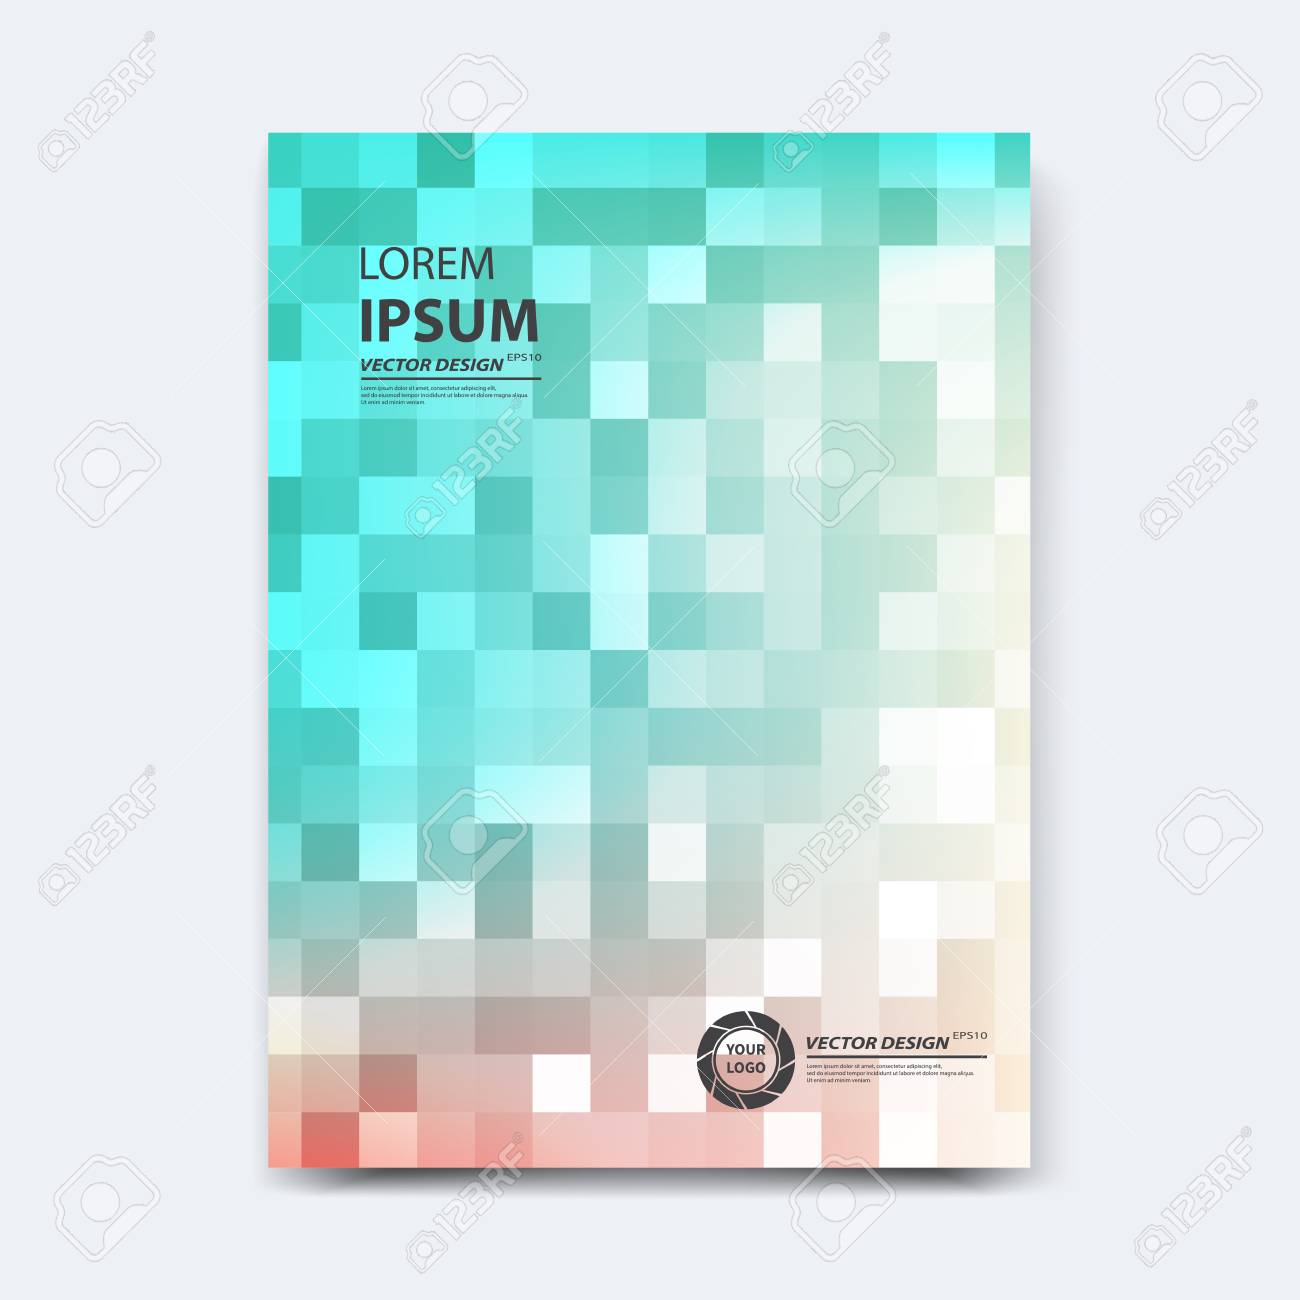 Abstract vector design for cover, poster, banner, flyer, business card, magazine annual report, title page, brochure template layout or booklet .A4 size with geometric shapes on white background. - 104581684